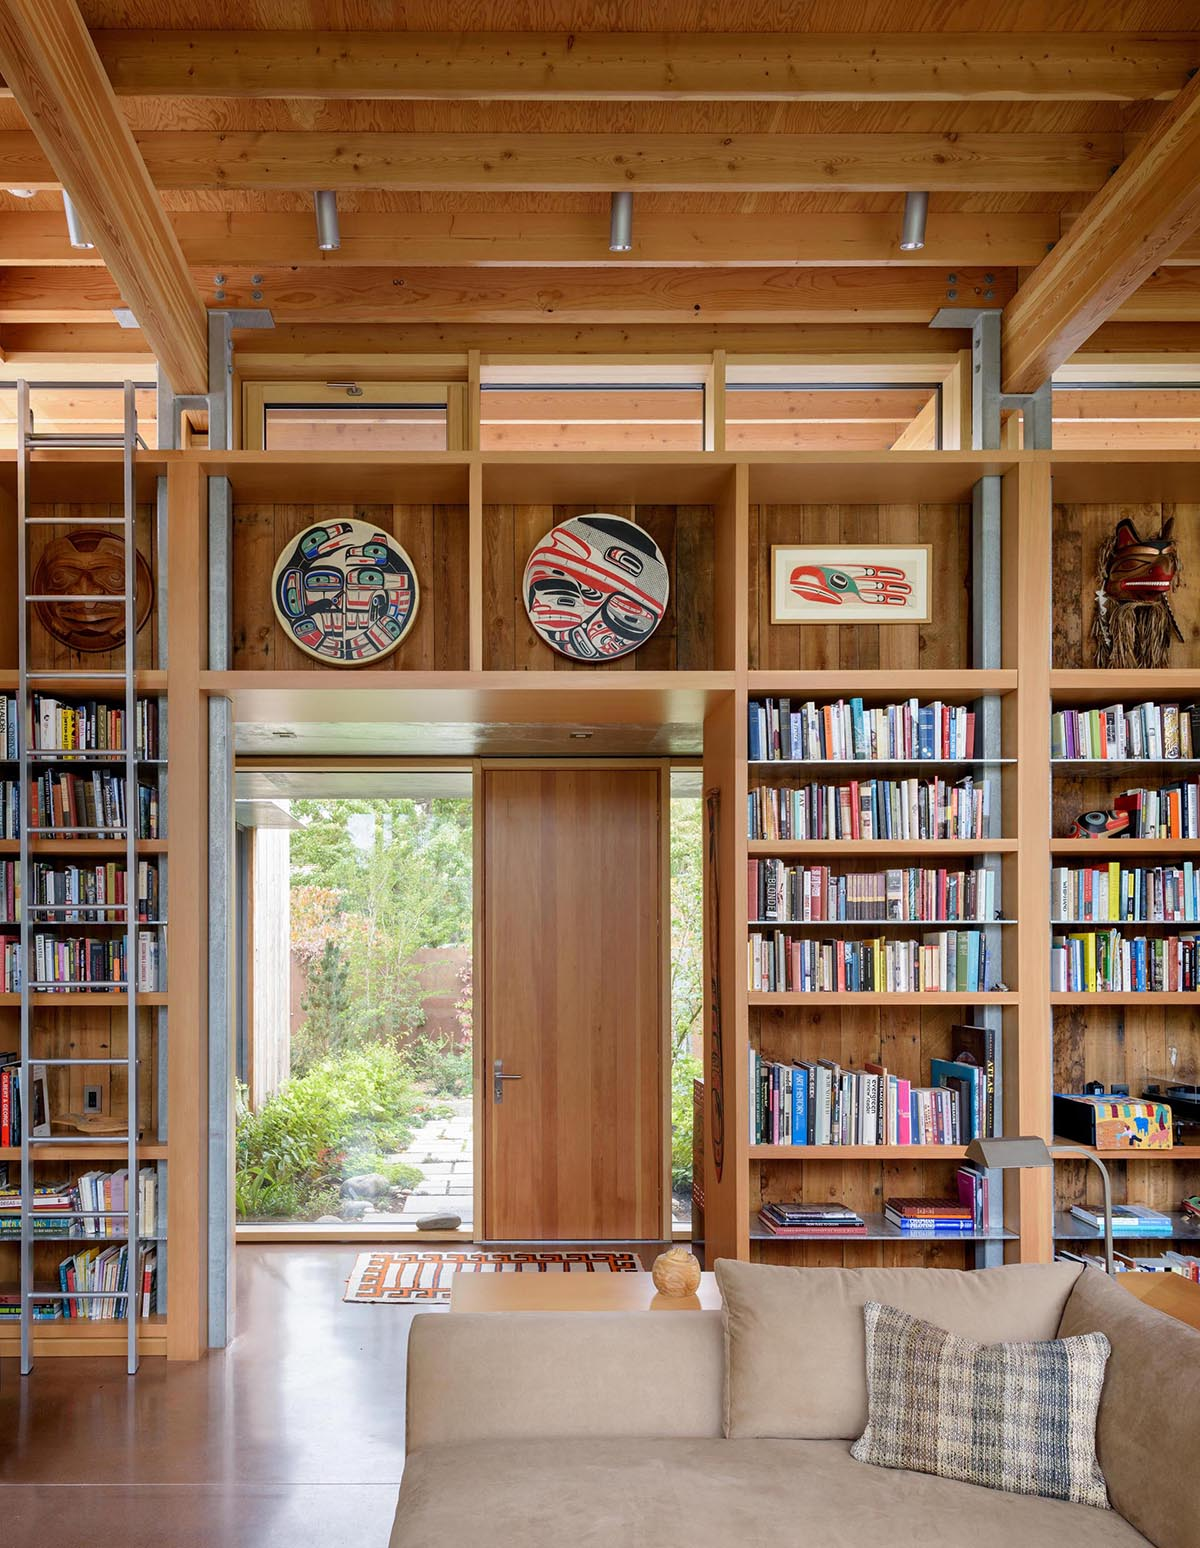 A modern cabin with wood shelving and 16ft high ceilings.